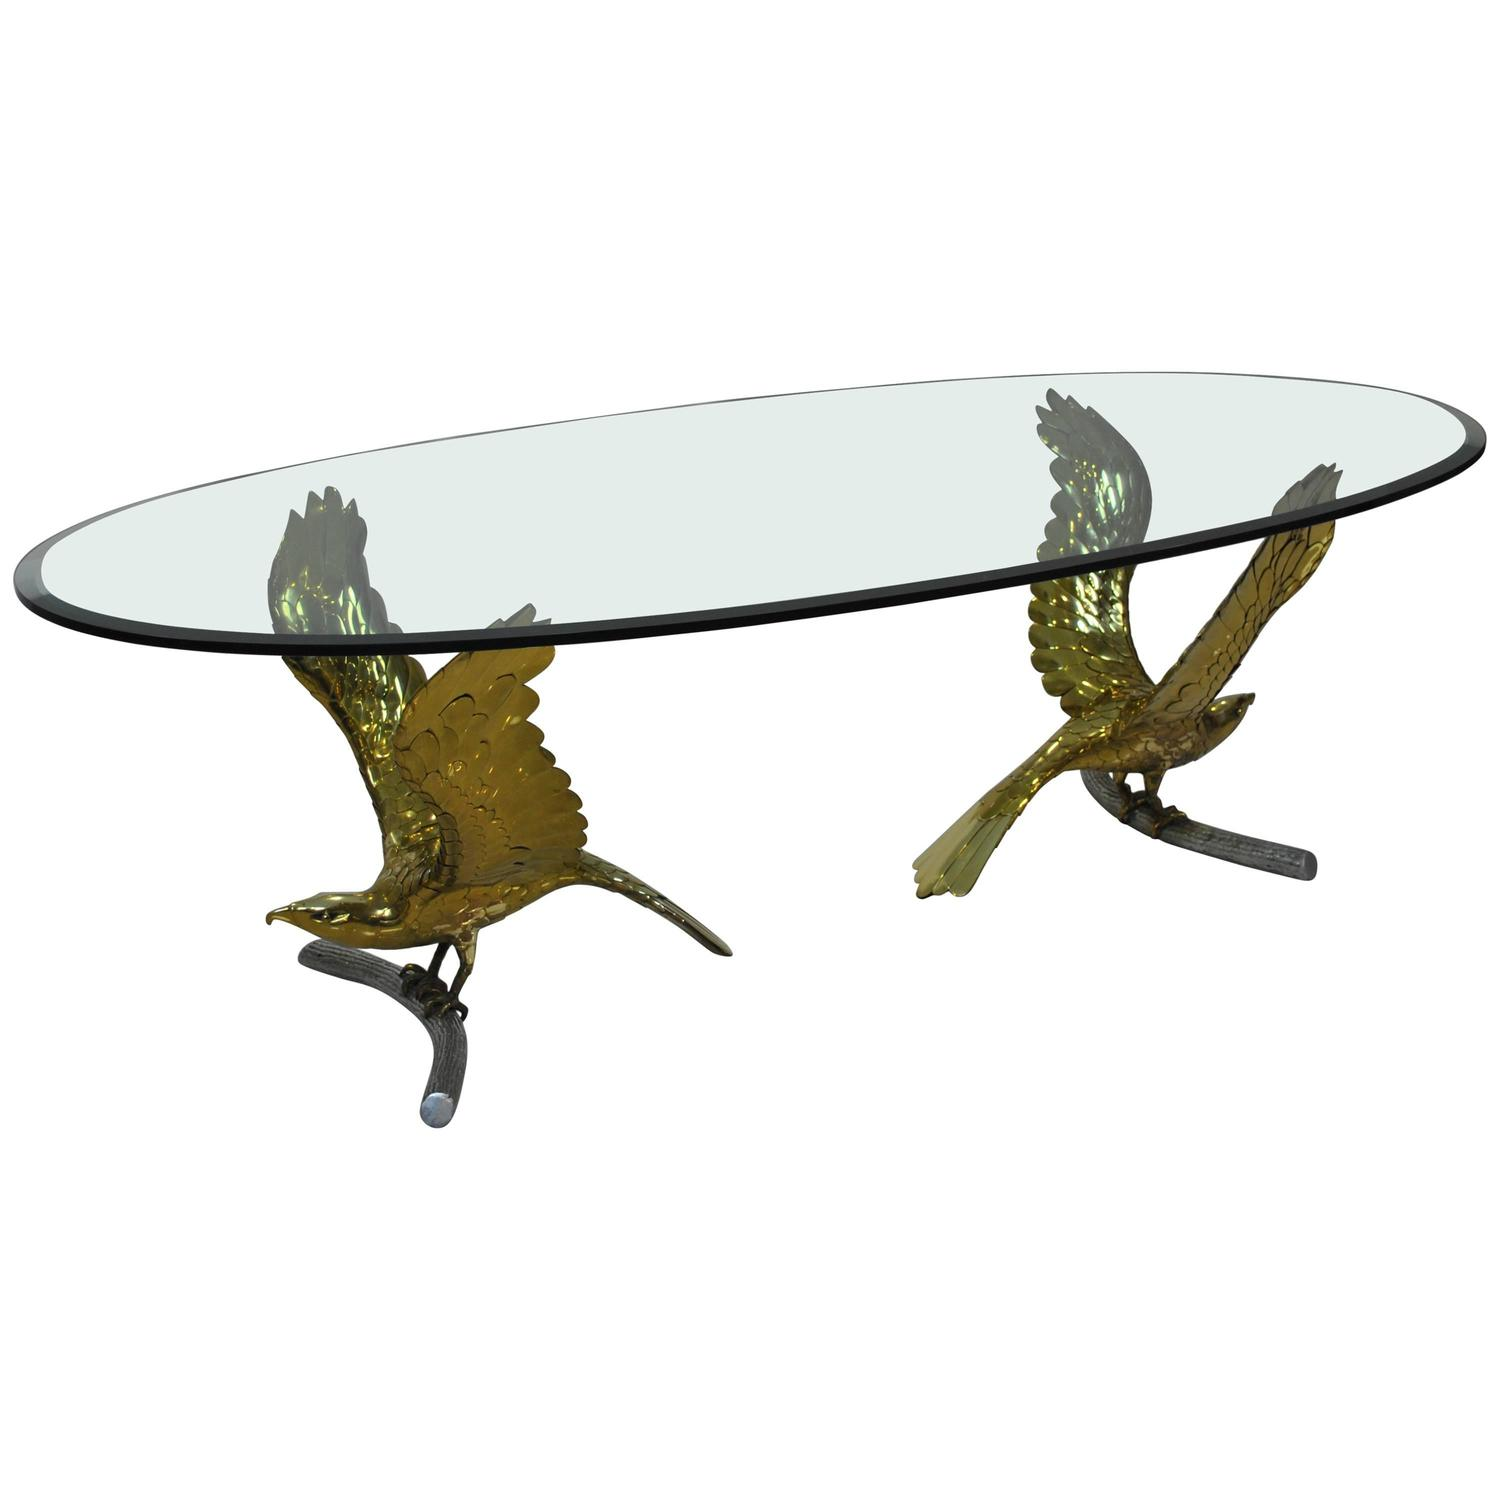 "Rare Brass ""Eagles"" Dining Table by Alain Chervet France 1970s"